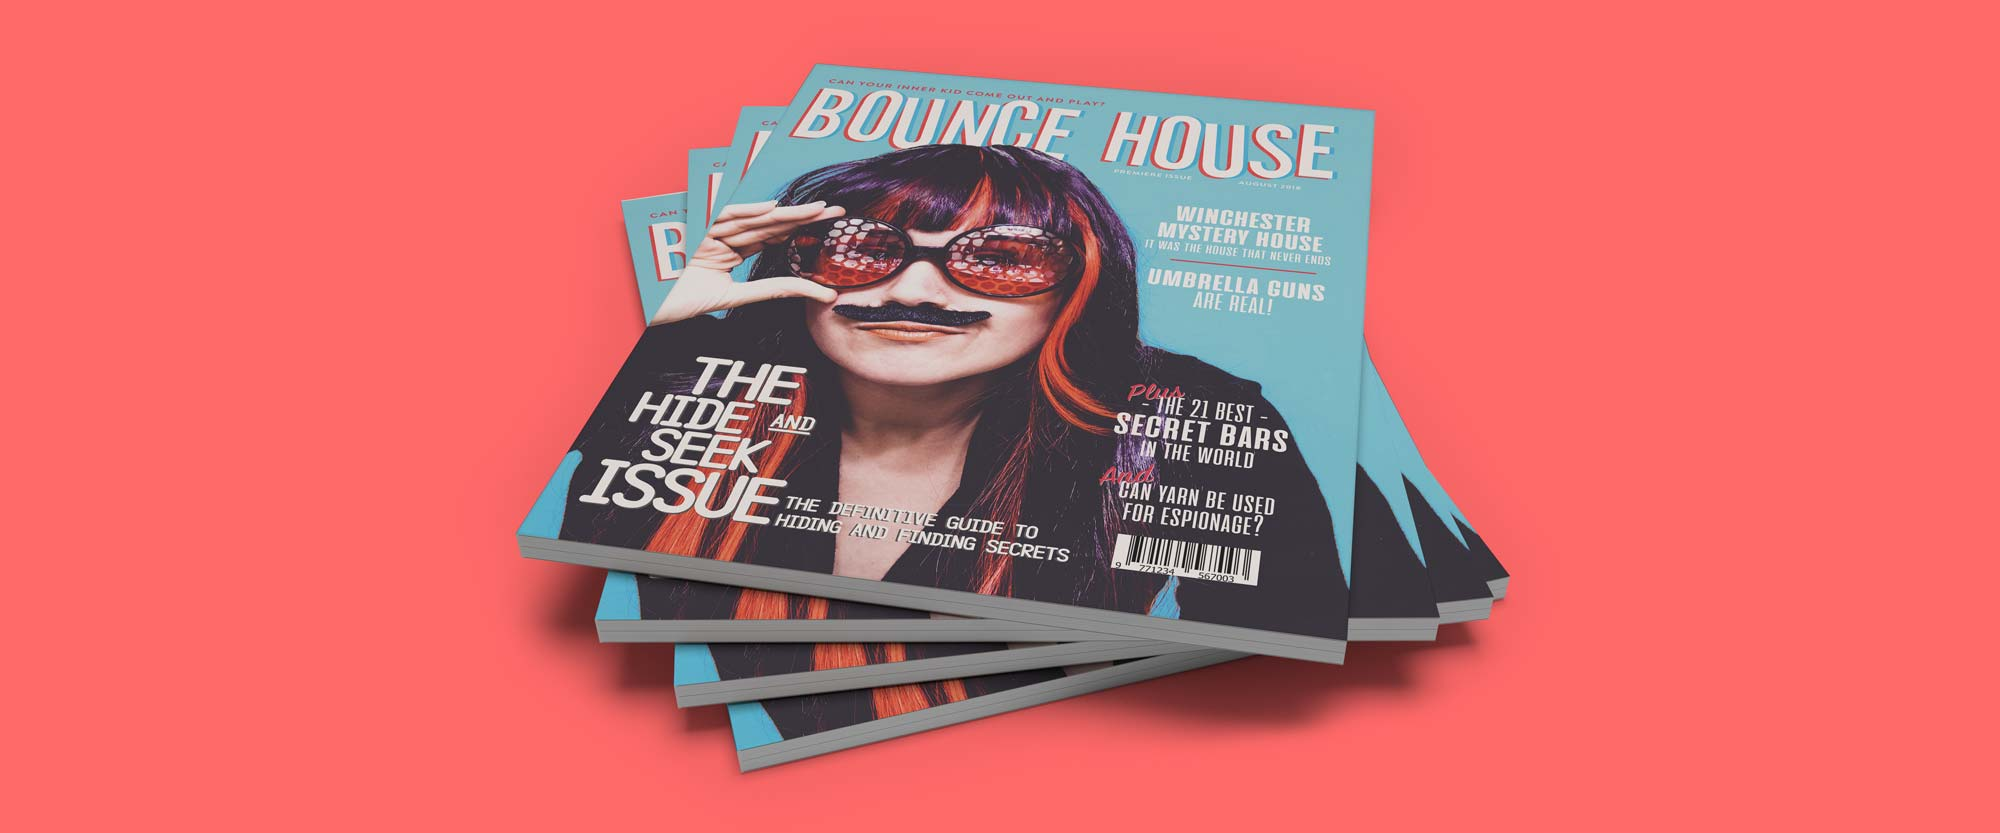 Stack of Bounce House issue 1